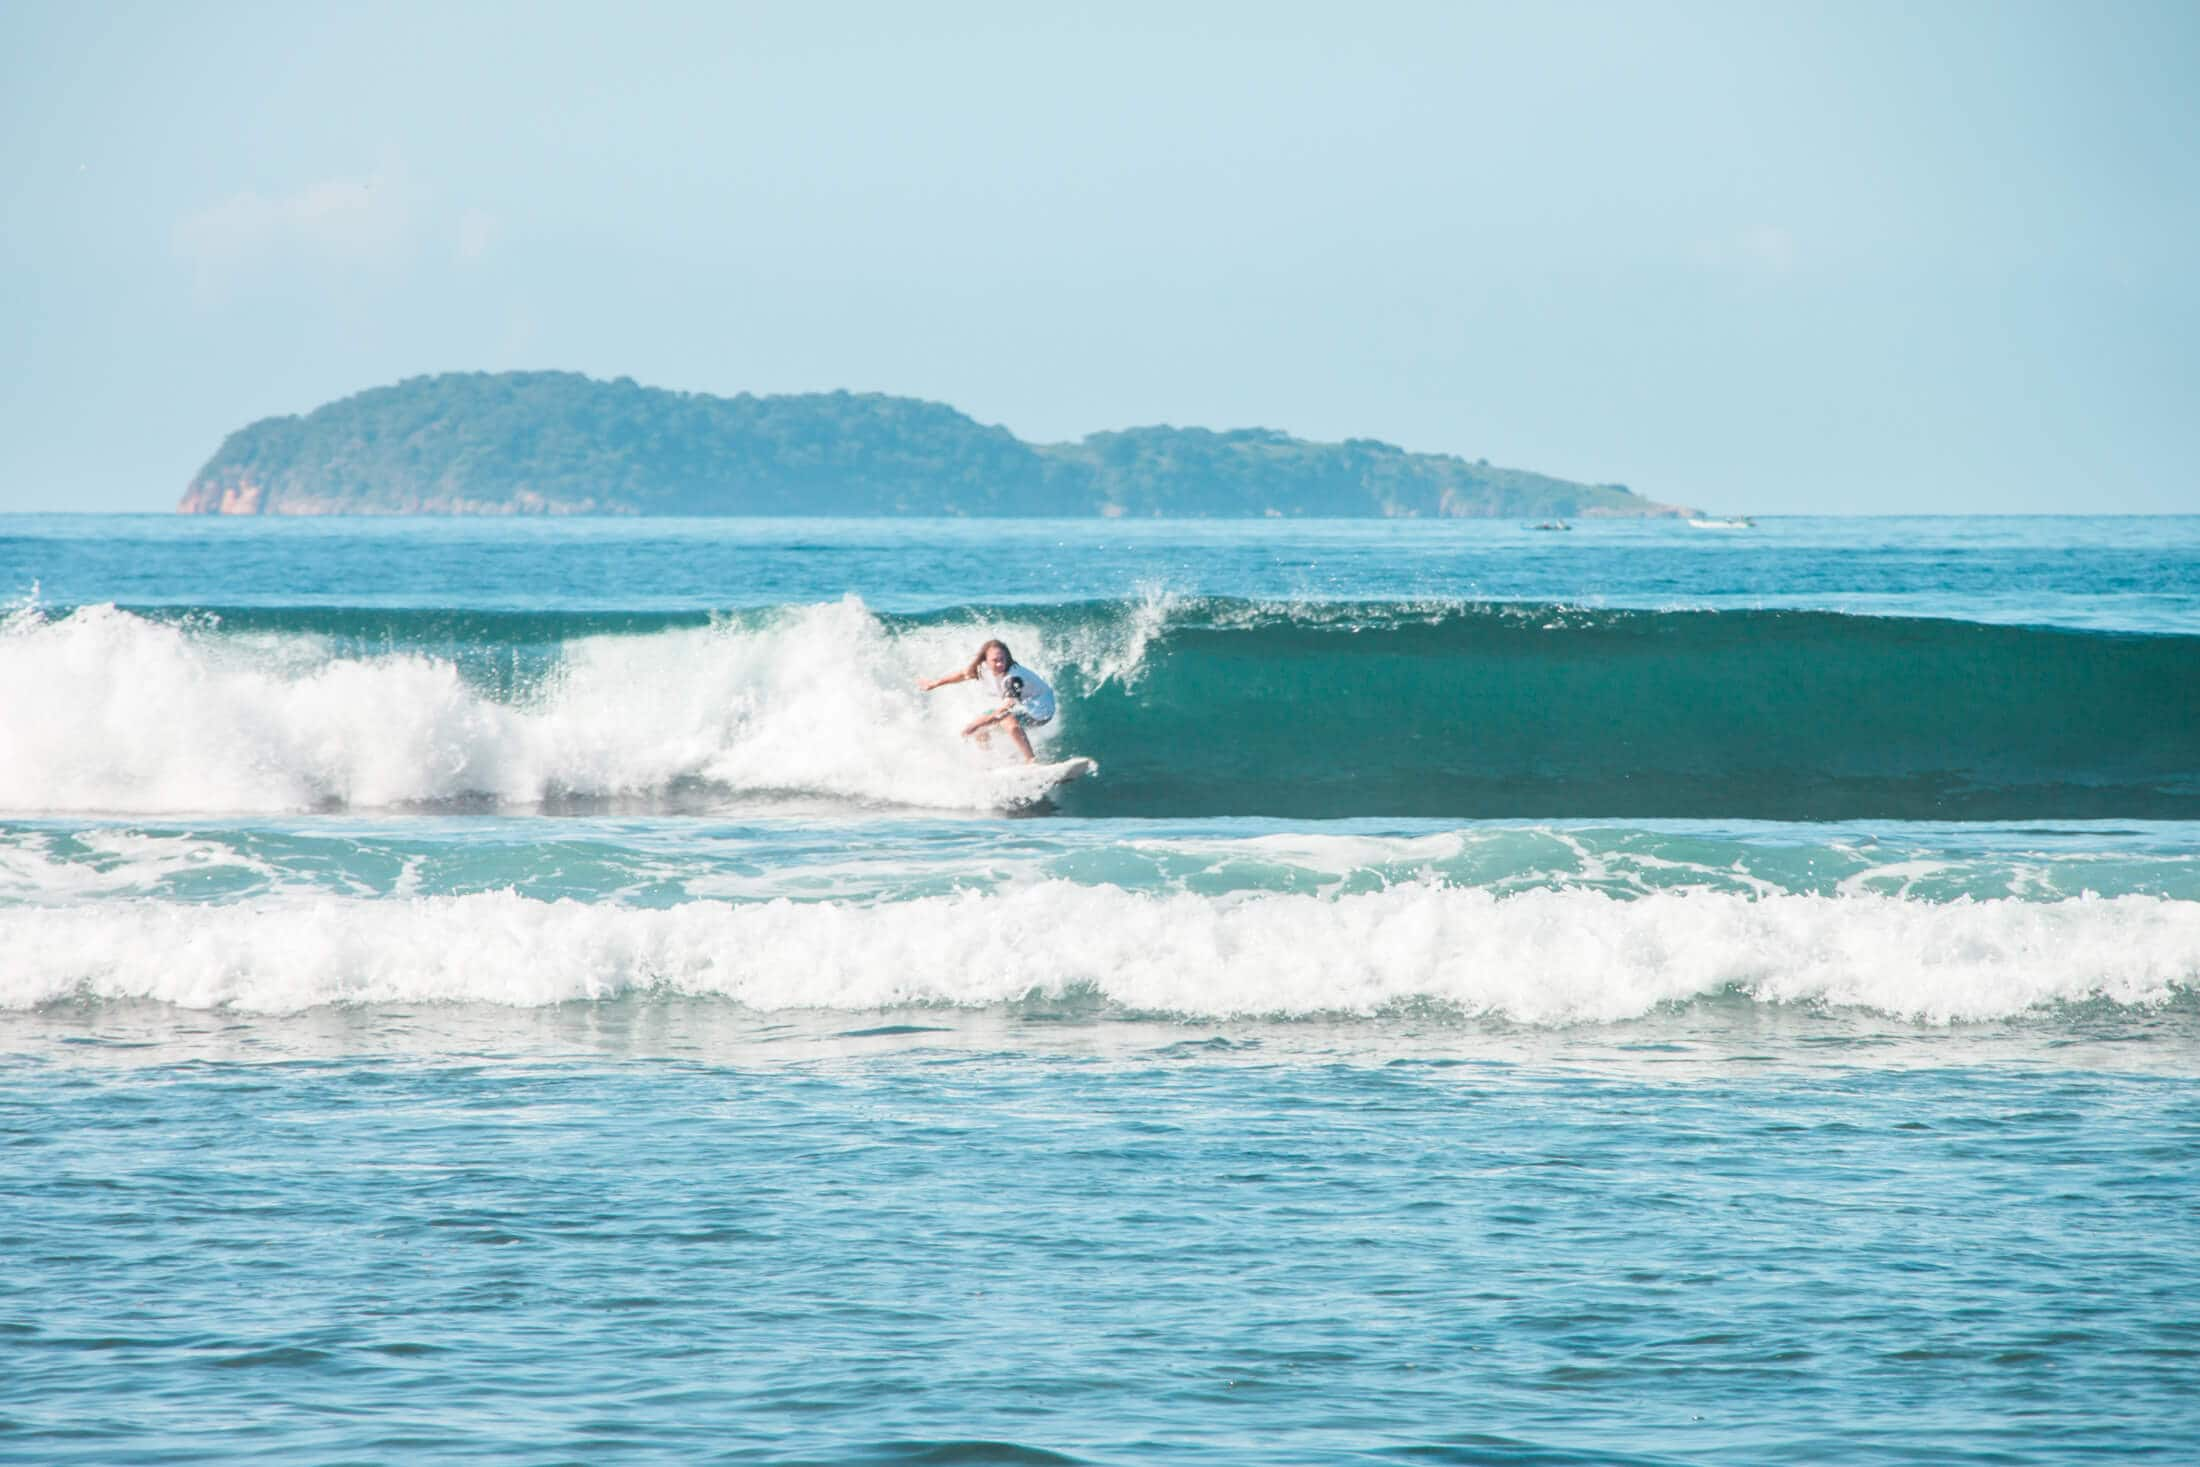 Surfing in Kertasari - Whales & Waves Resort in Sumbawa, Indonesia - The most amazing place I've ever been